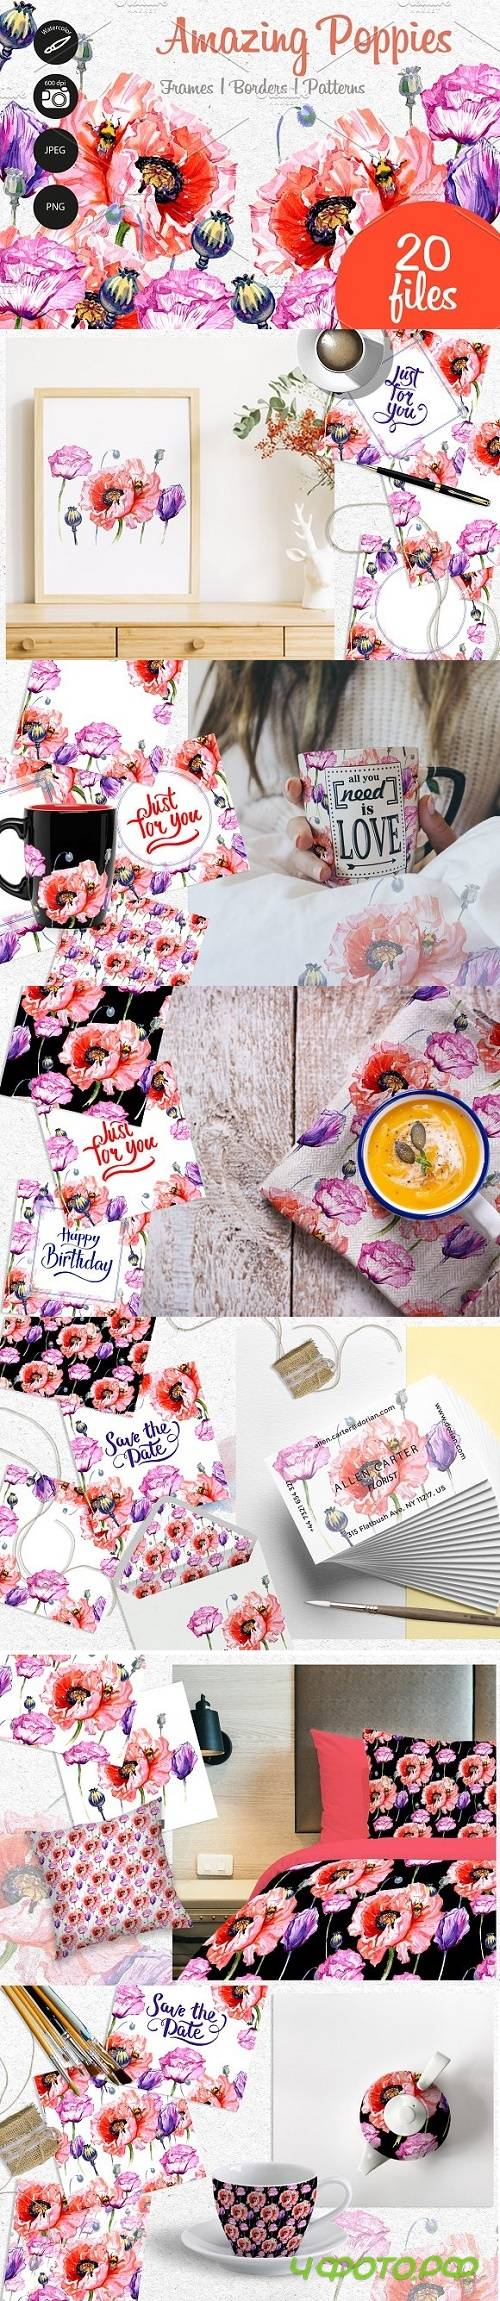 Amazing poppies PNG watercolor set 2441867